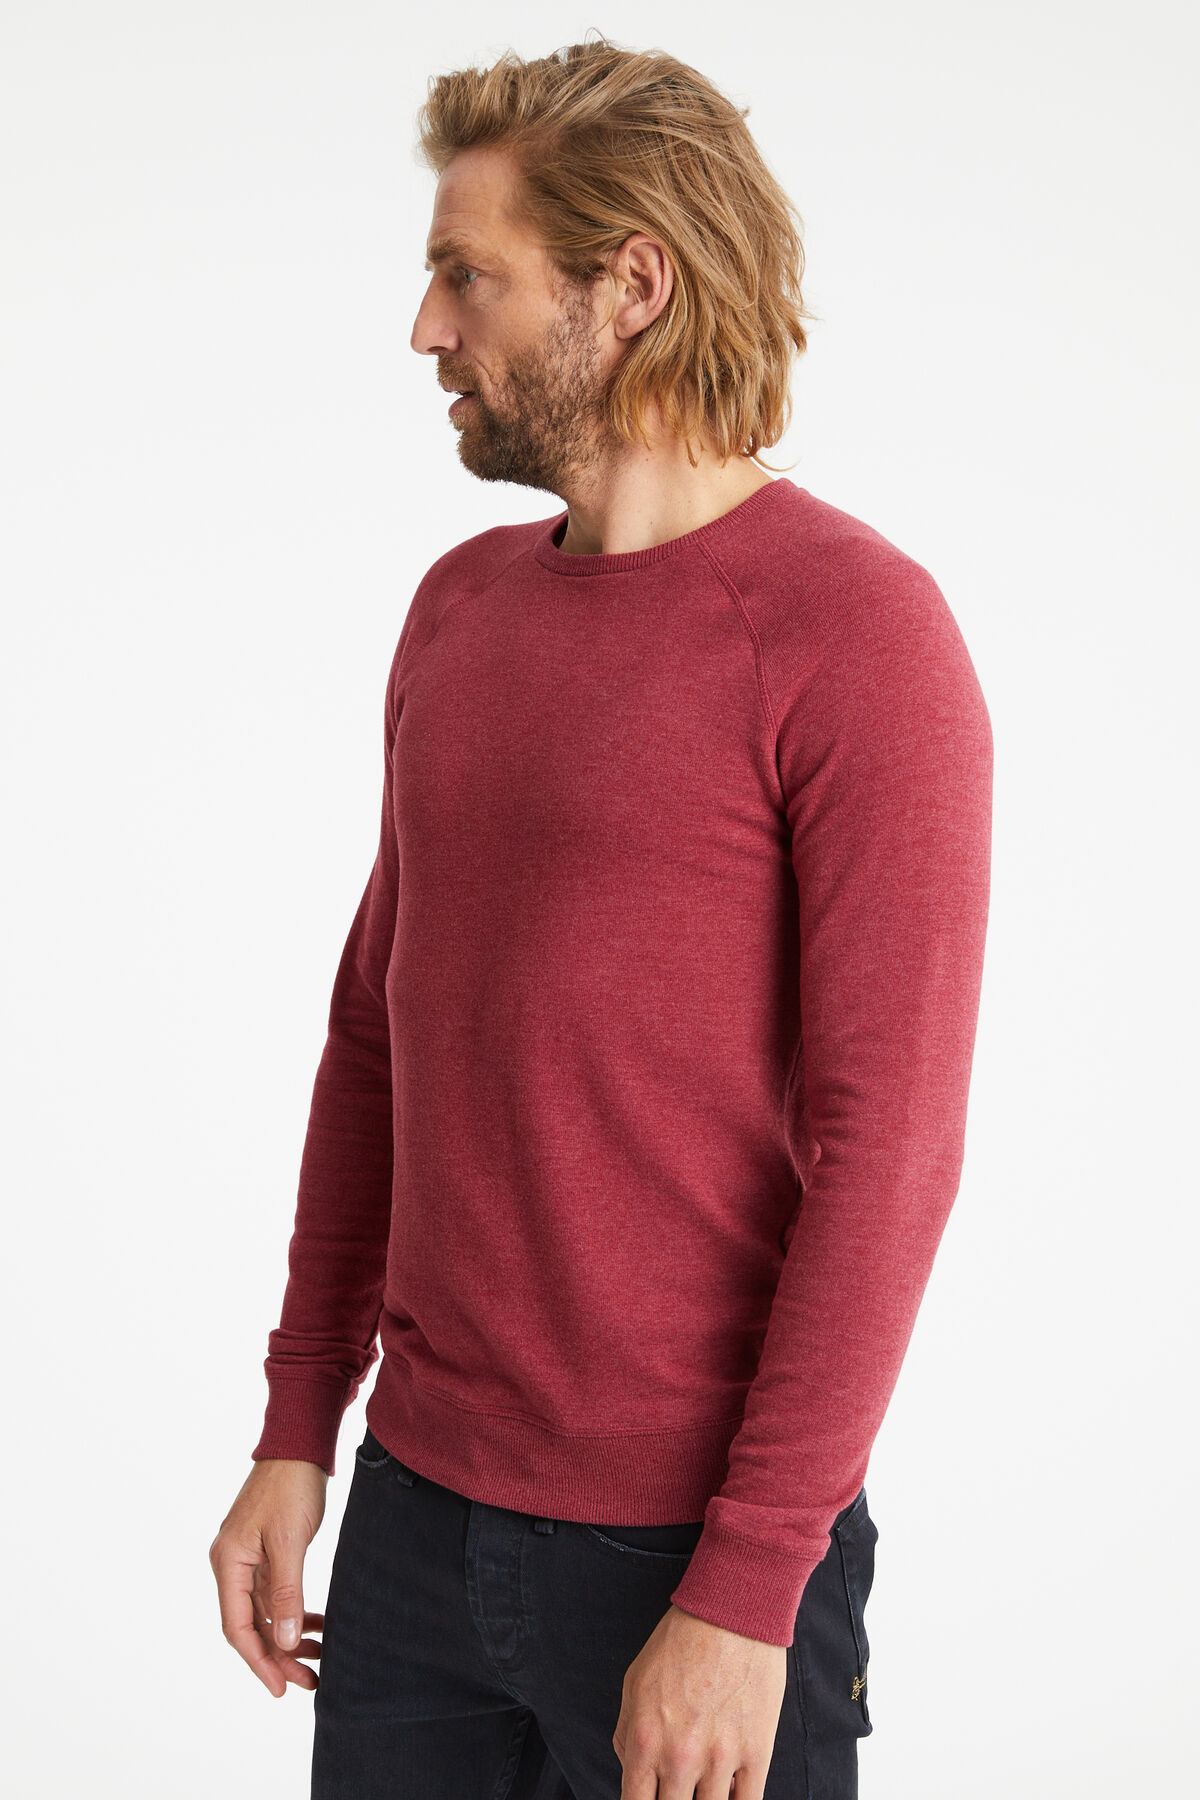 JV RAGLAN CREW Cotton Melange Jersey - Slim Fit